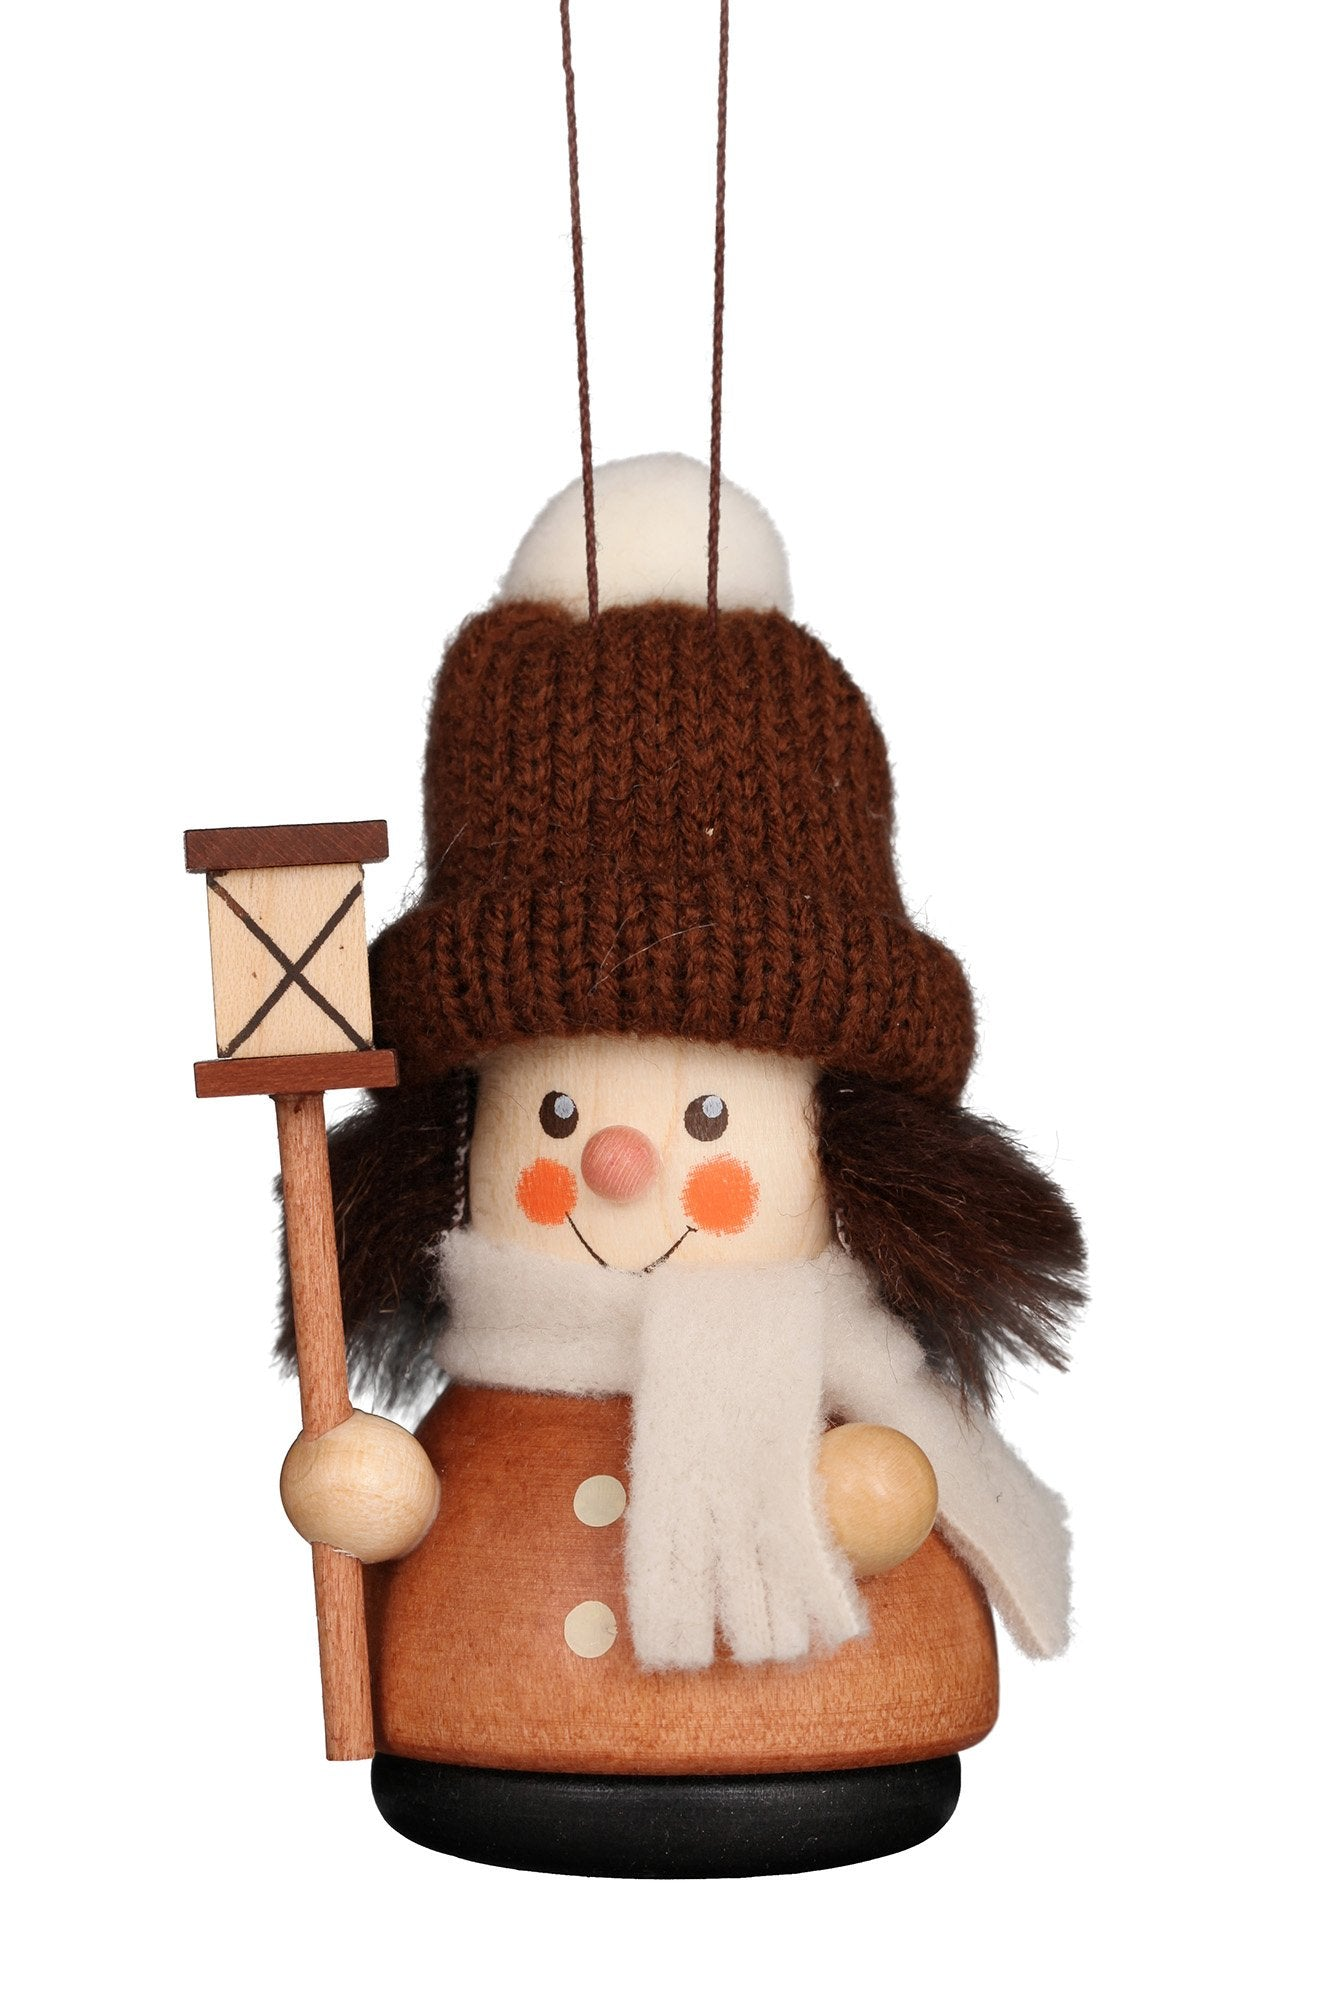 Little gnome Christmas tree decoration - Carol singer